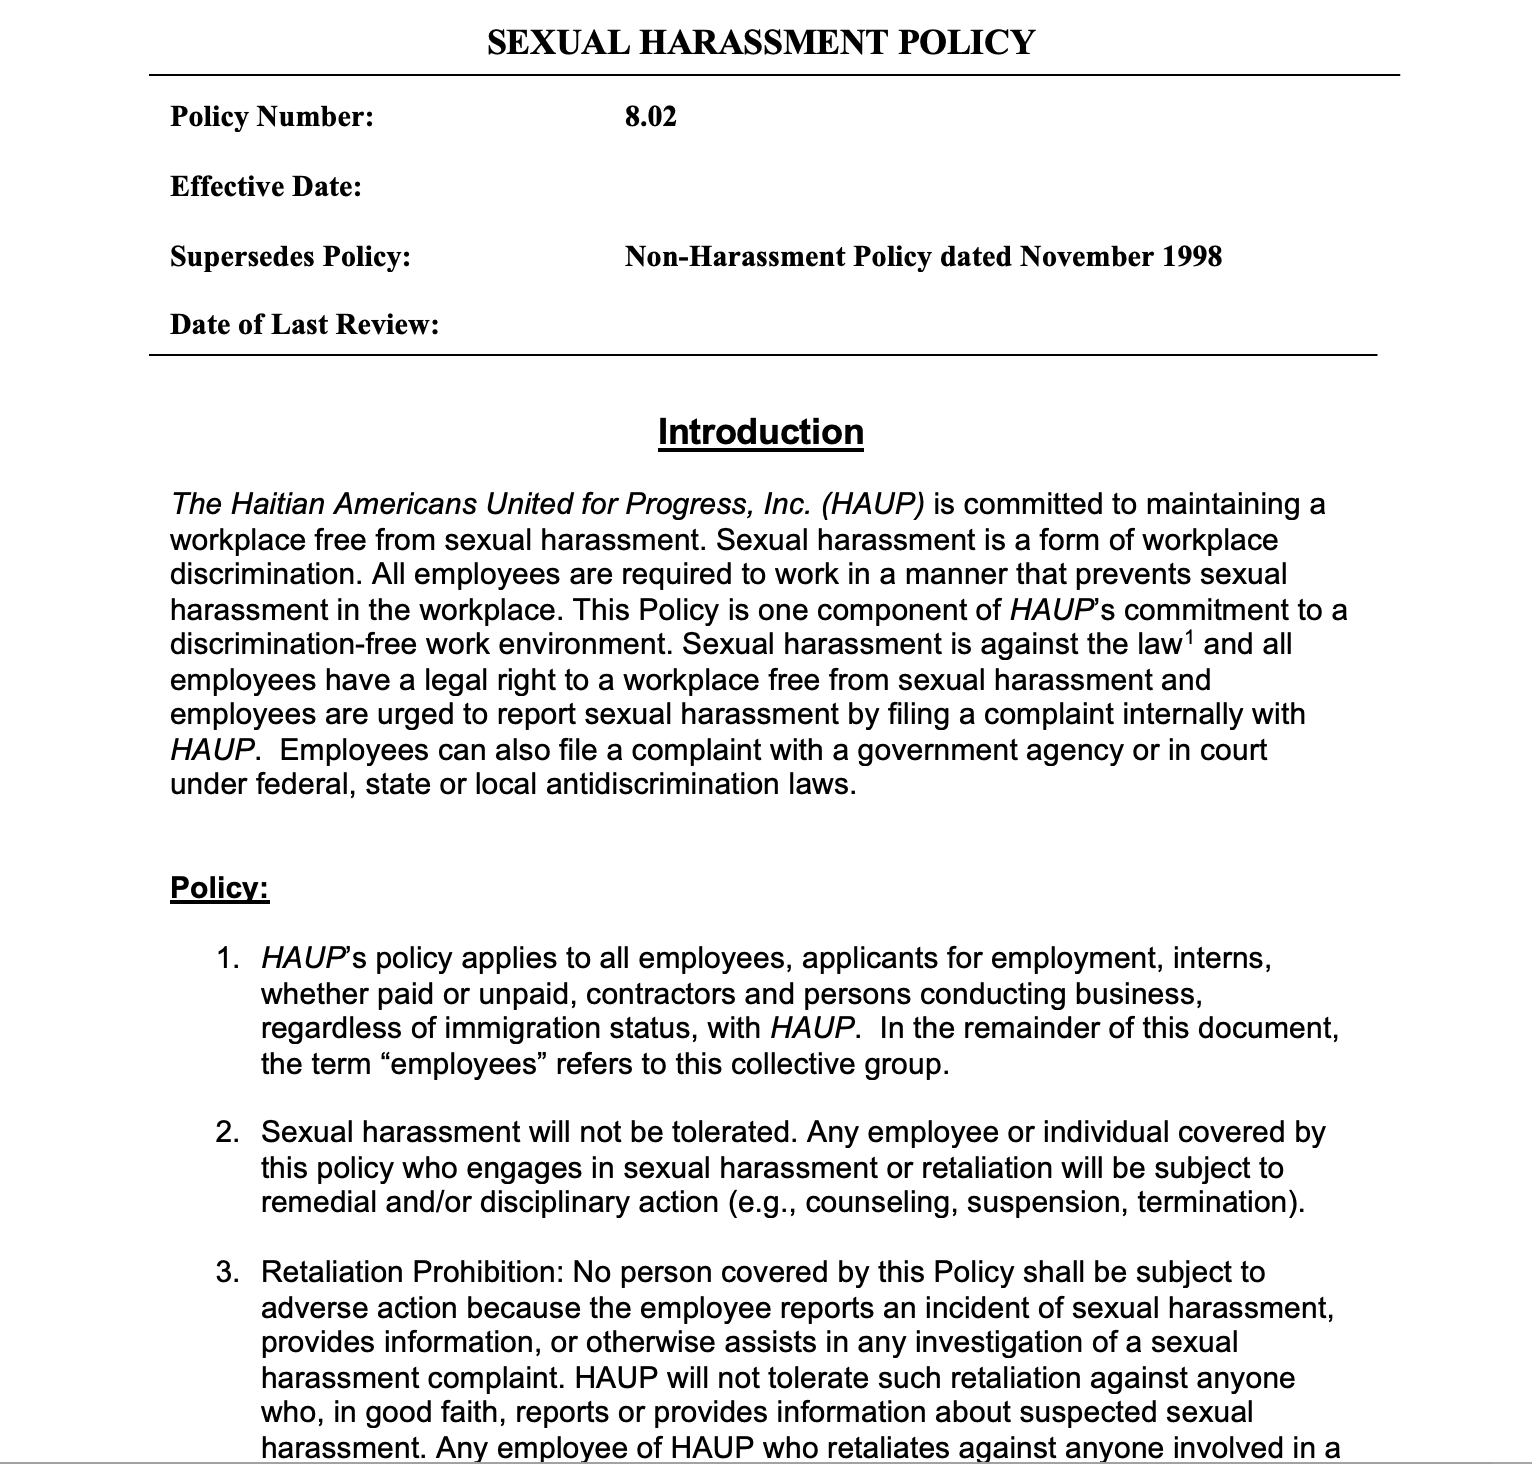 HAUP Sexual Harassment Policy - Click here to read more on HAUP sexual harassment policy